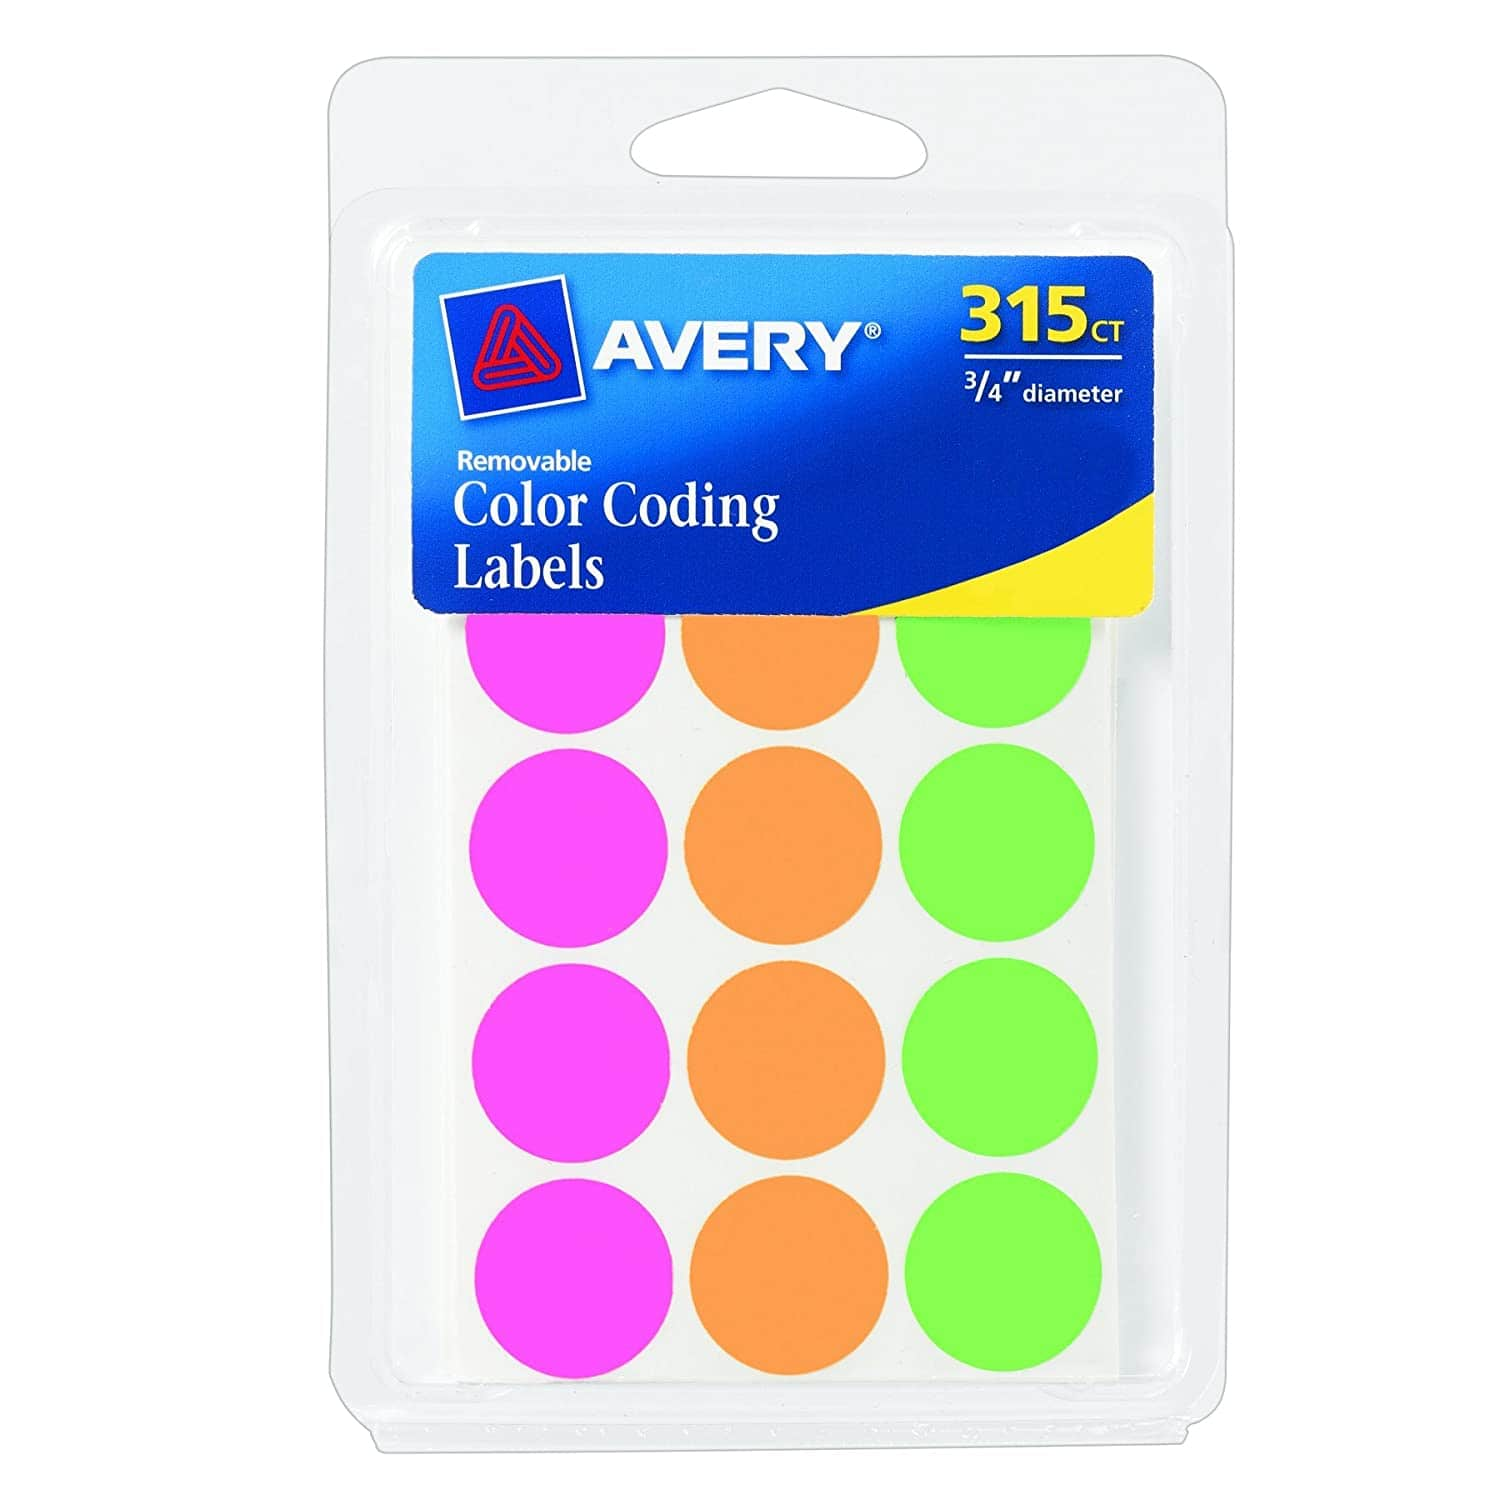 315 count Avery Round Color Coding Labels, 0.75 Inch, Assorted, Removable: $1.12 + FS/Prime